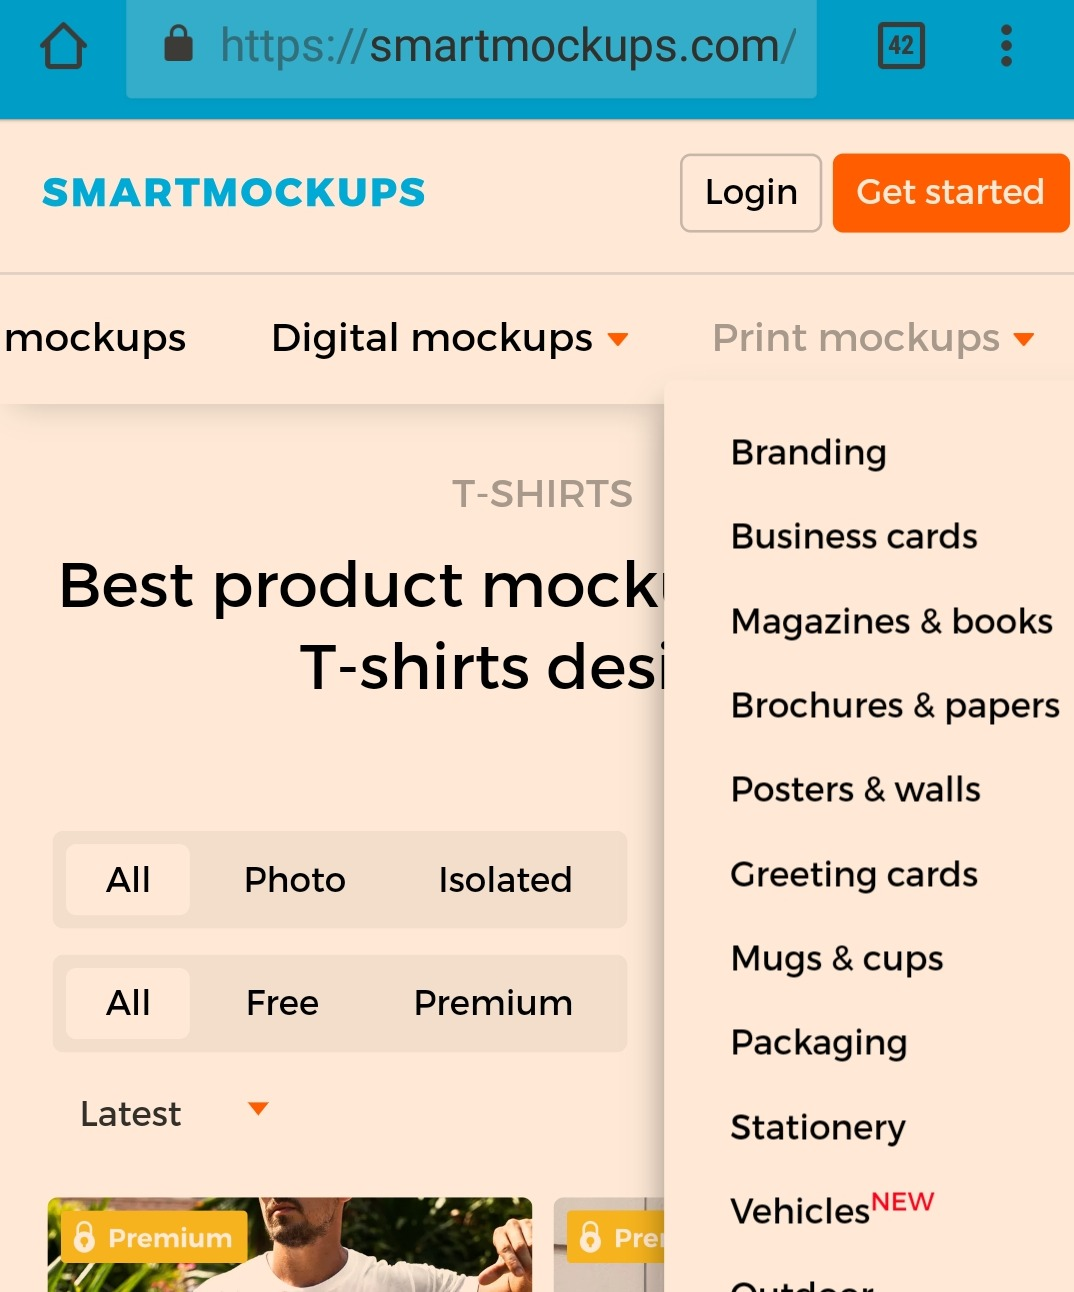 How To Create Smart Mockups and Place its for Your Products